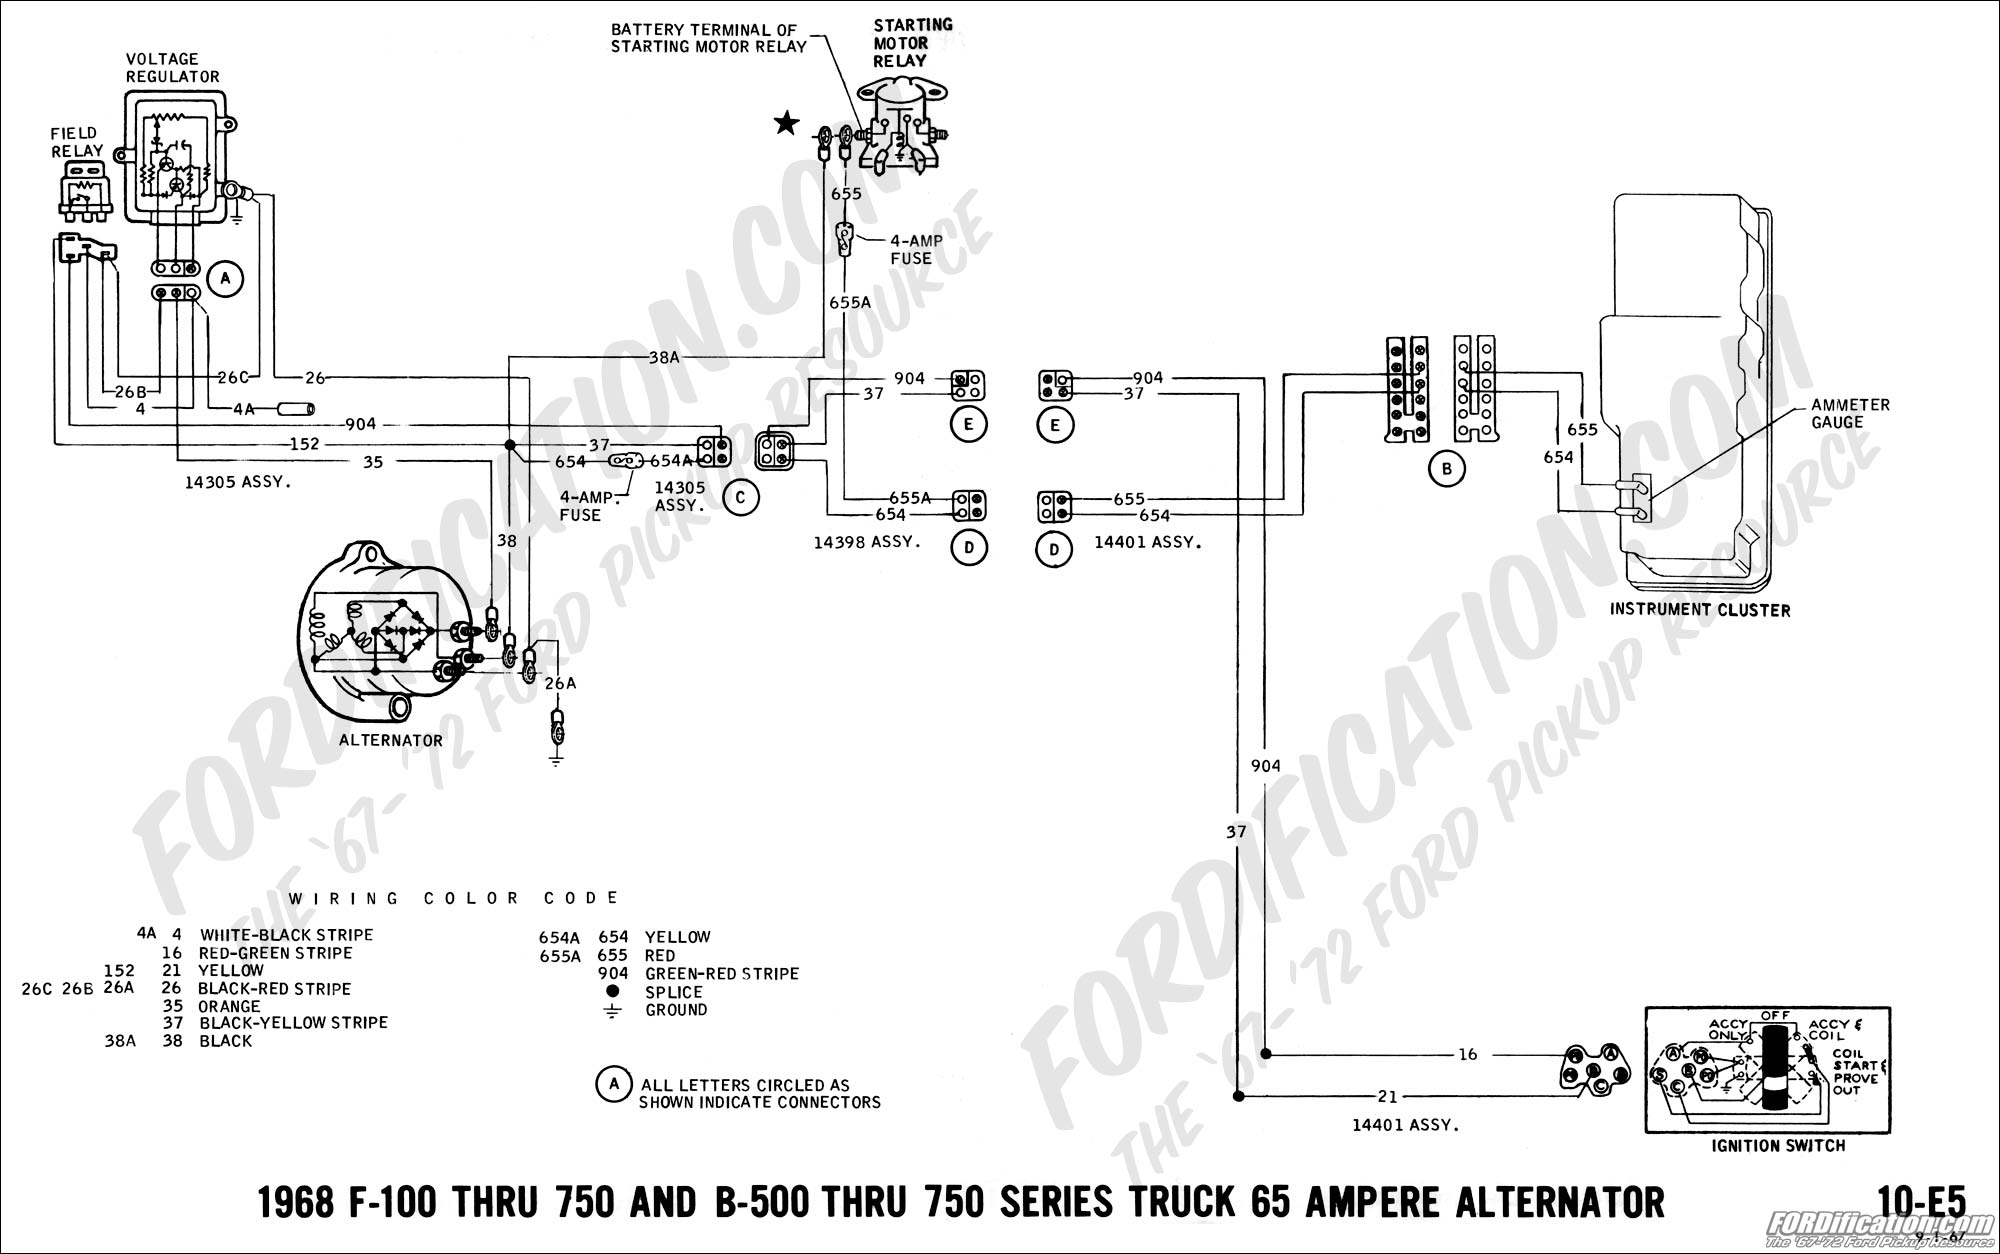 1968 Ford Steering Column Wiring Diagram Will Be A 1983 1972 F100 Schematics Data Schema Rh Site De Joueurs Com 1956